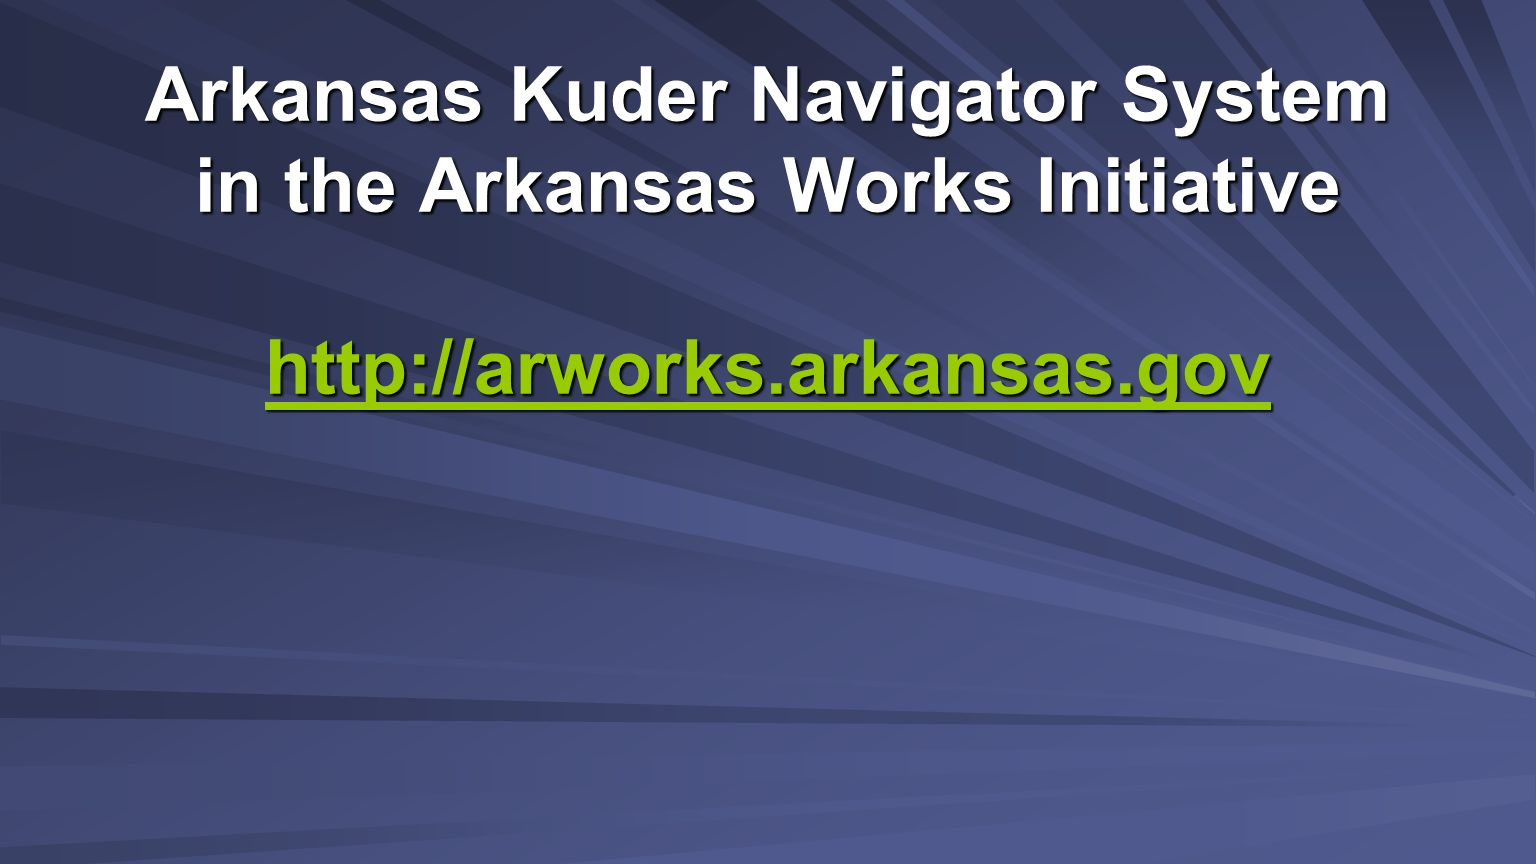 Arkansas Kuder Navigator System in the Arkansas Works Initiative http://arworks.arkansas.gov